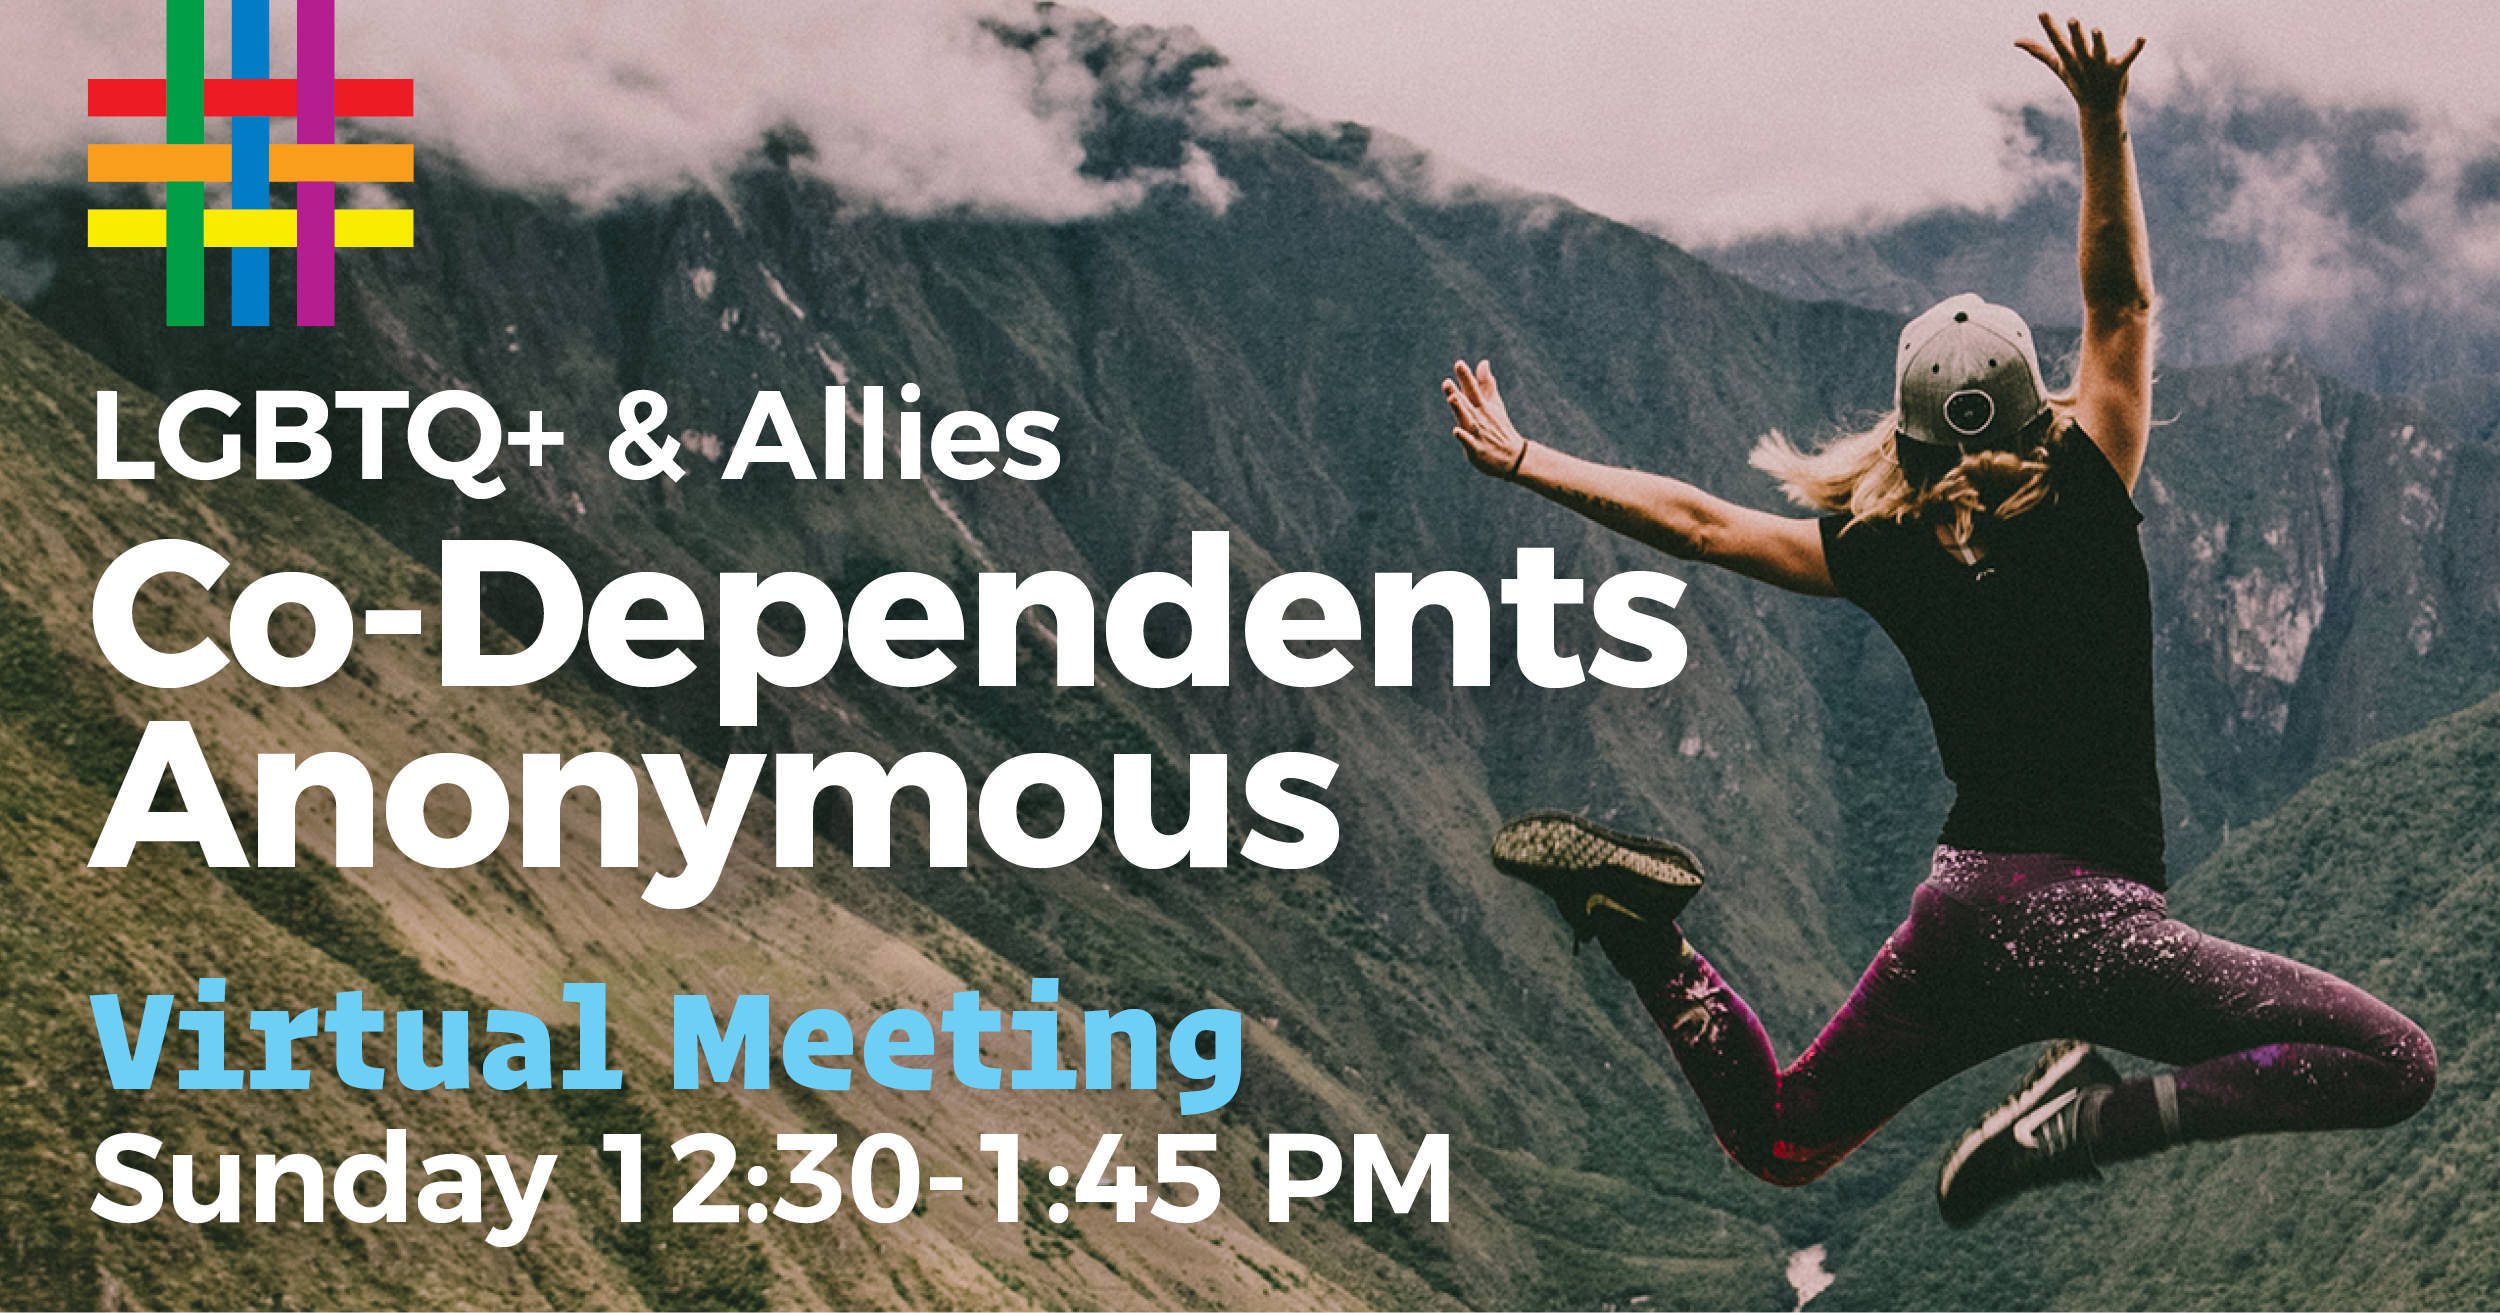 VIRTUAL: LGBTQ+ & Allies Co-Dependents Anonymous